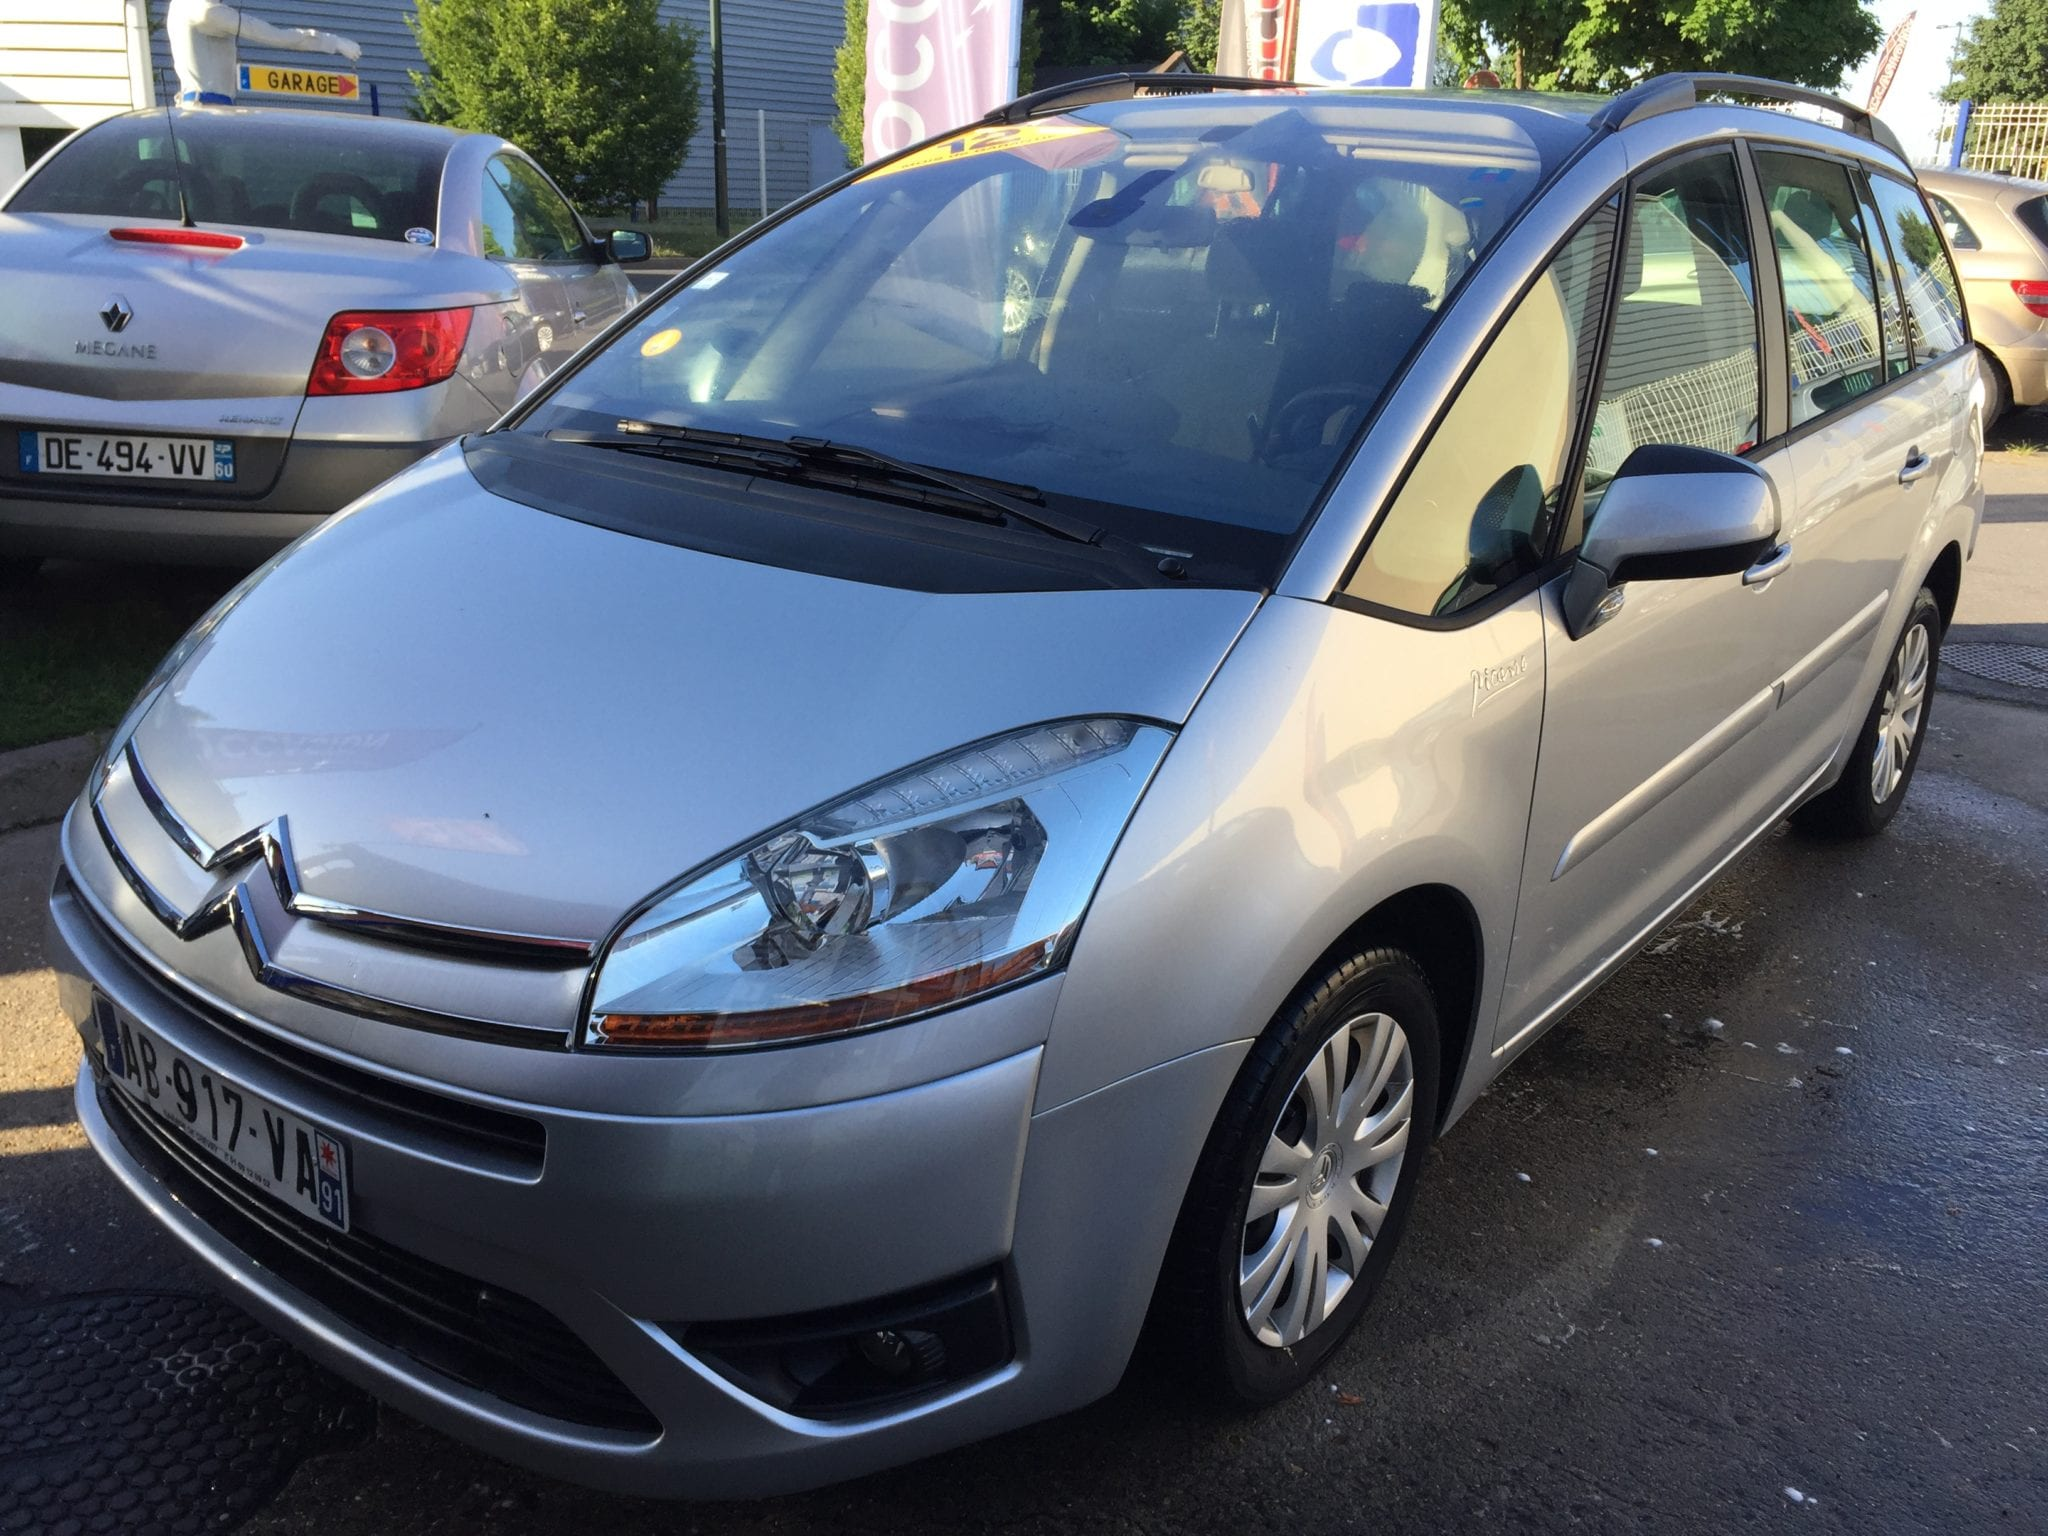 Citroën  GRAND C4 PICASSO 2.0 HDI 138 FAP PACK AMBIANCE BMP6 - Image 7